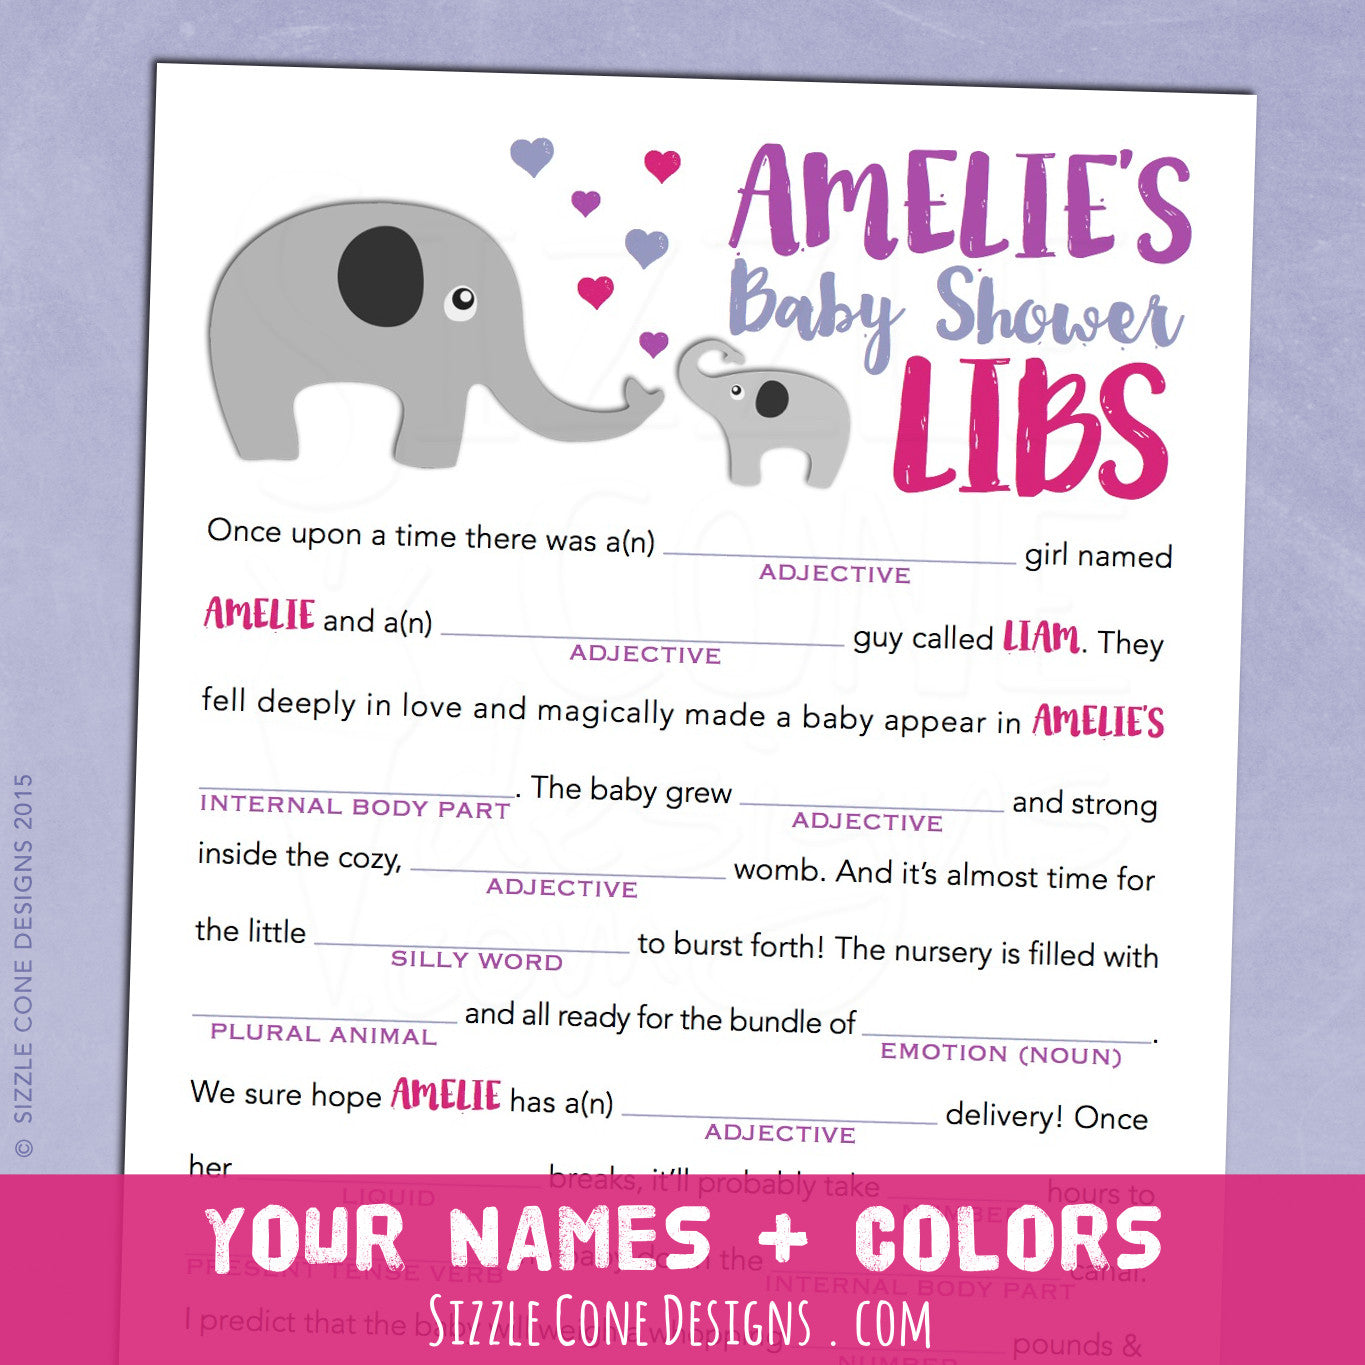 picture relating to Baby Shower Mad Libs Printable named Elephants Child Shower Outrageous Lib Match - Custom-made Printable